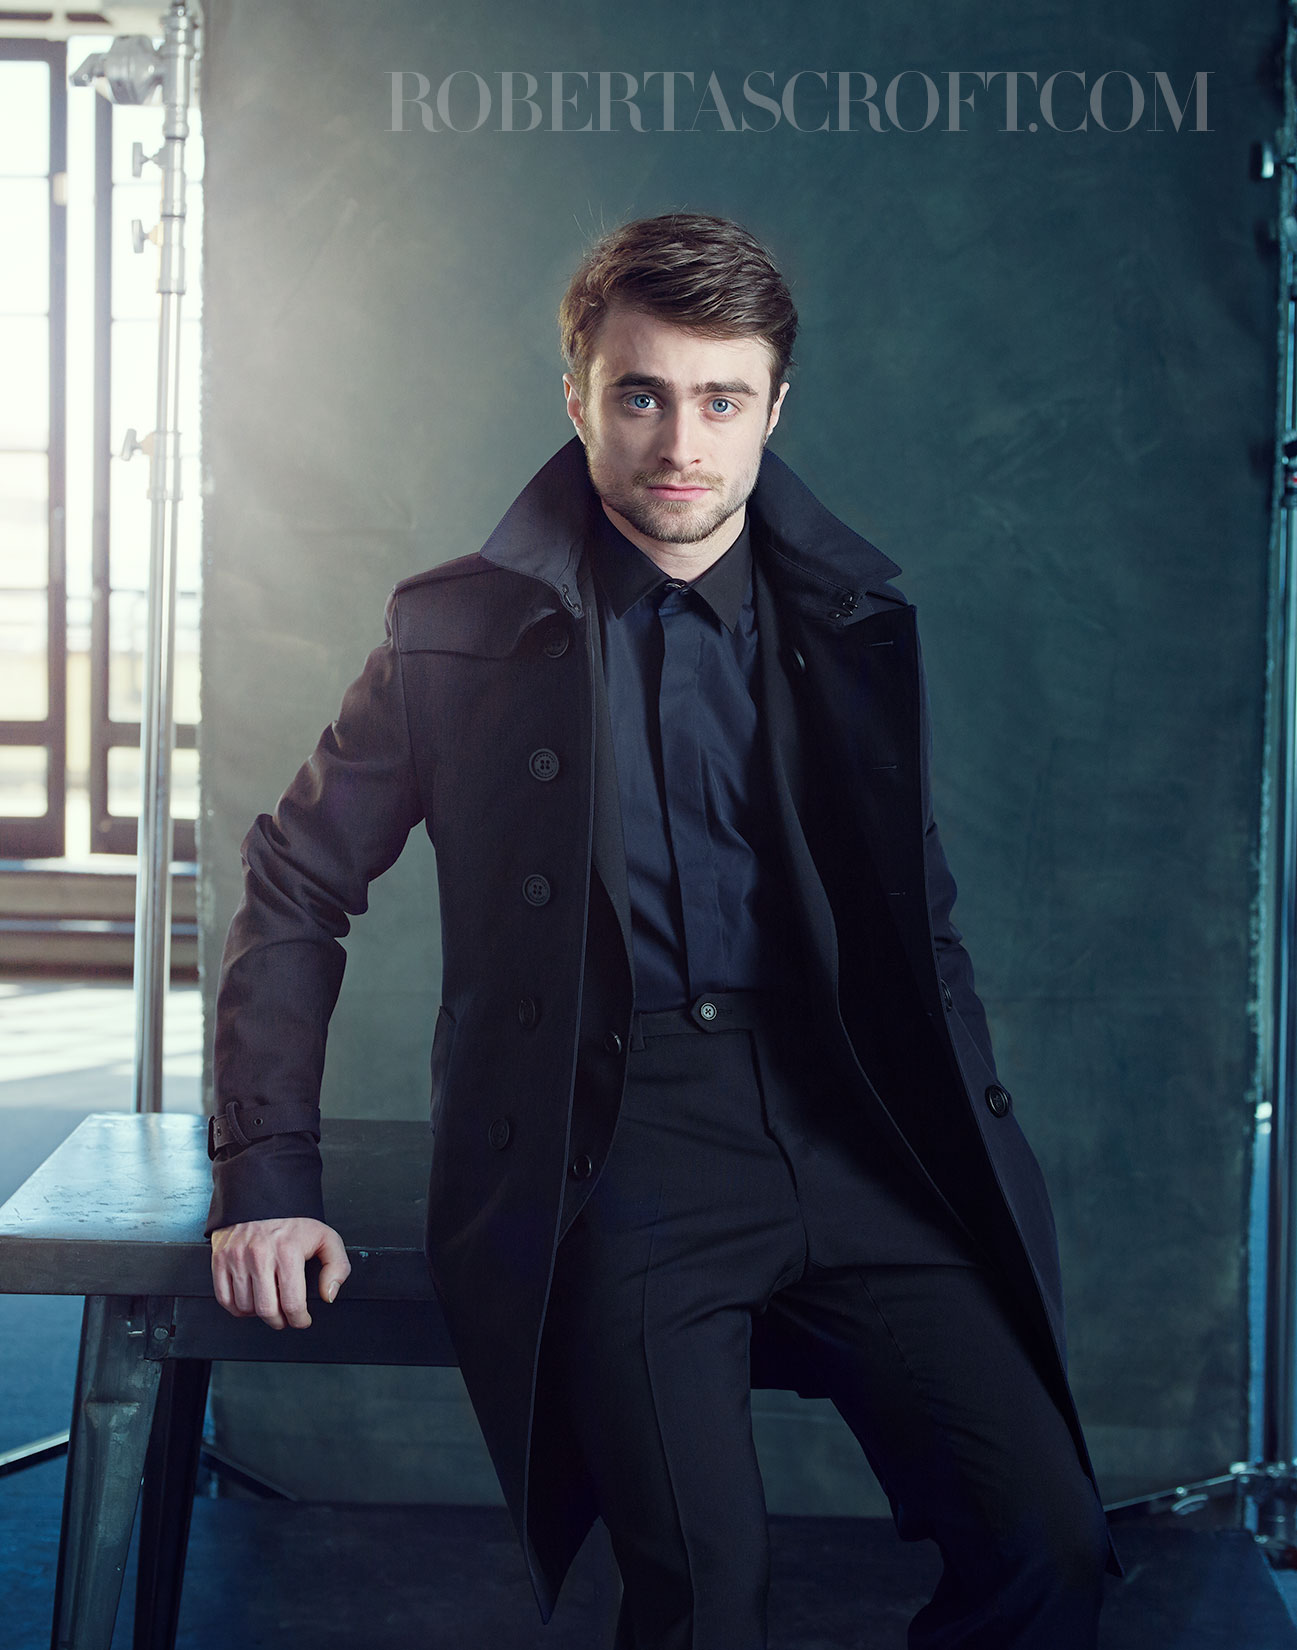 Daniel-Radcliffe-by-Robert-Ascroft-06